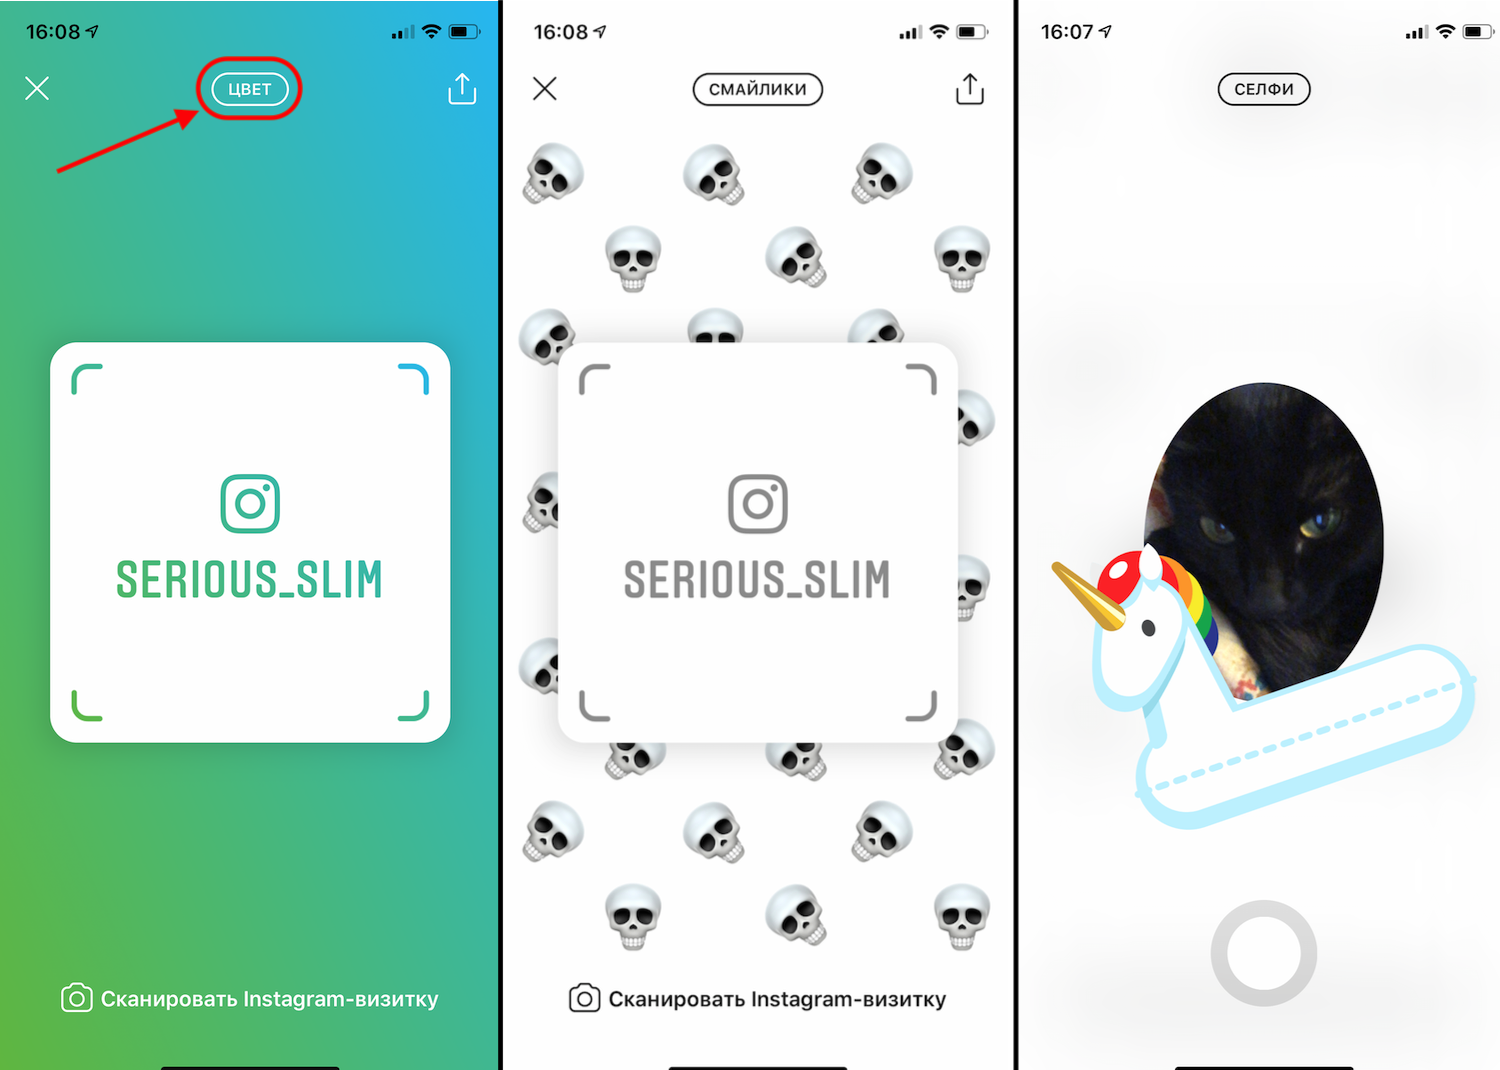 How to quickly search for friends ' profiles in Instagram